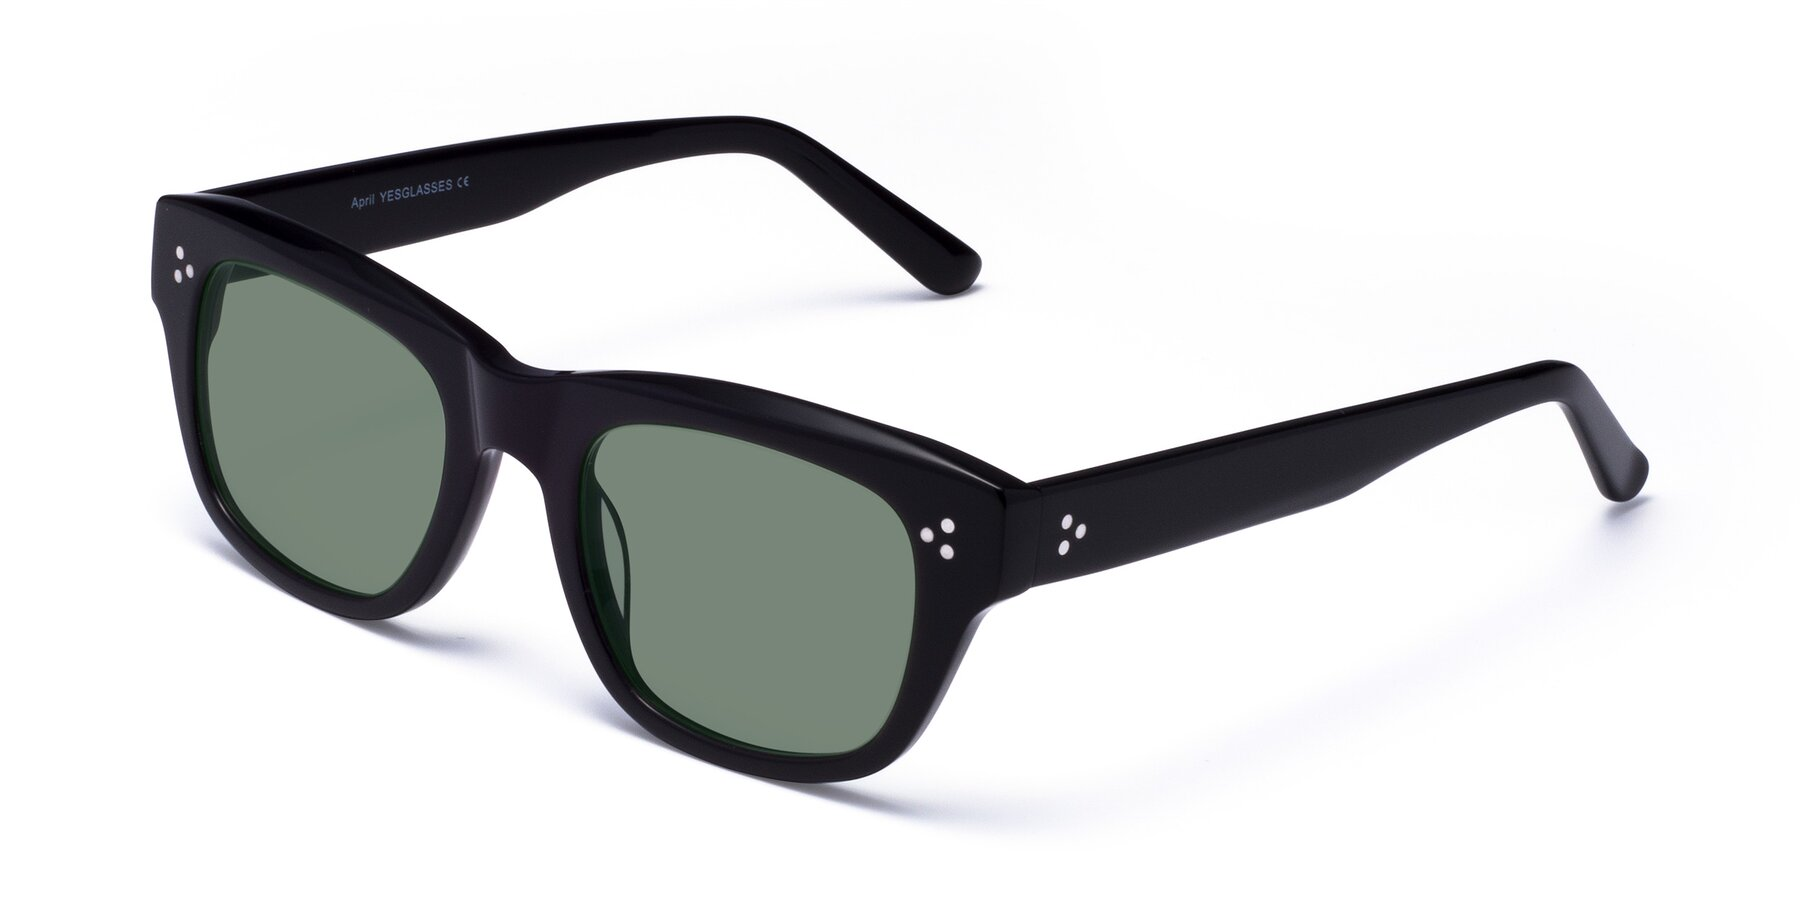 Angle of April in Black with Medium Green Tinted Lenses